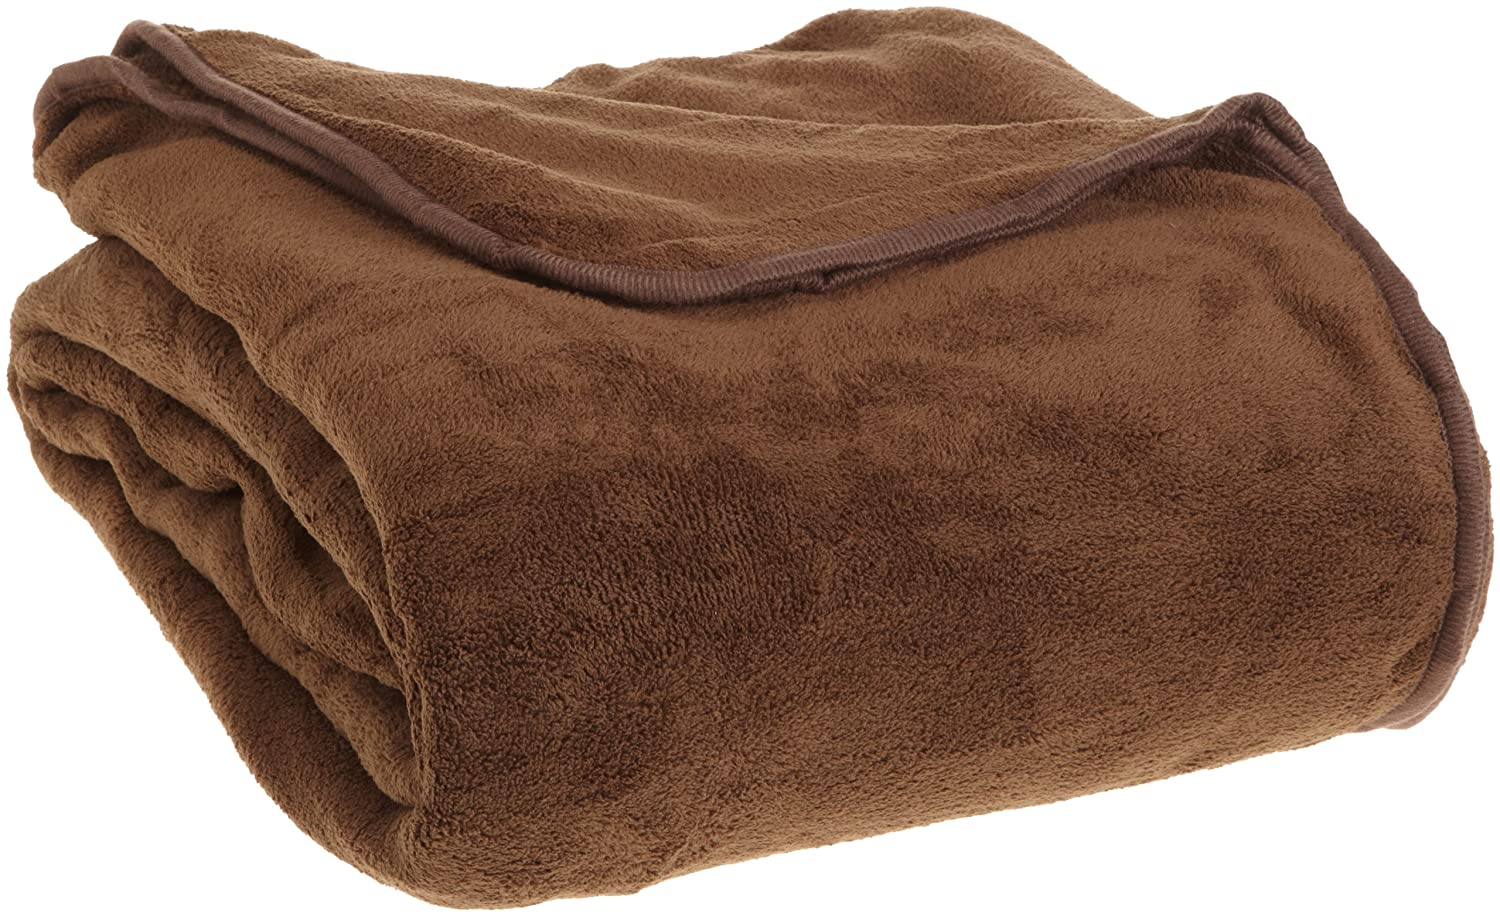 http://www.amazon.com/Seasons-Collection-Fleece-Blanket-Chocolate/dp/B003U2SS3G/ref=sr_1_3?ie=UTF8&qid=1396312469&sr=8-3&keywords=fleece+blanket